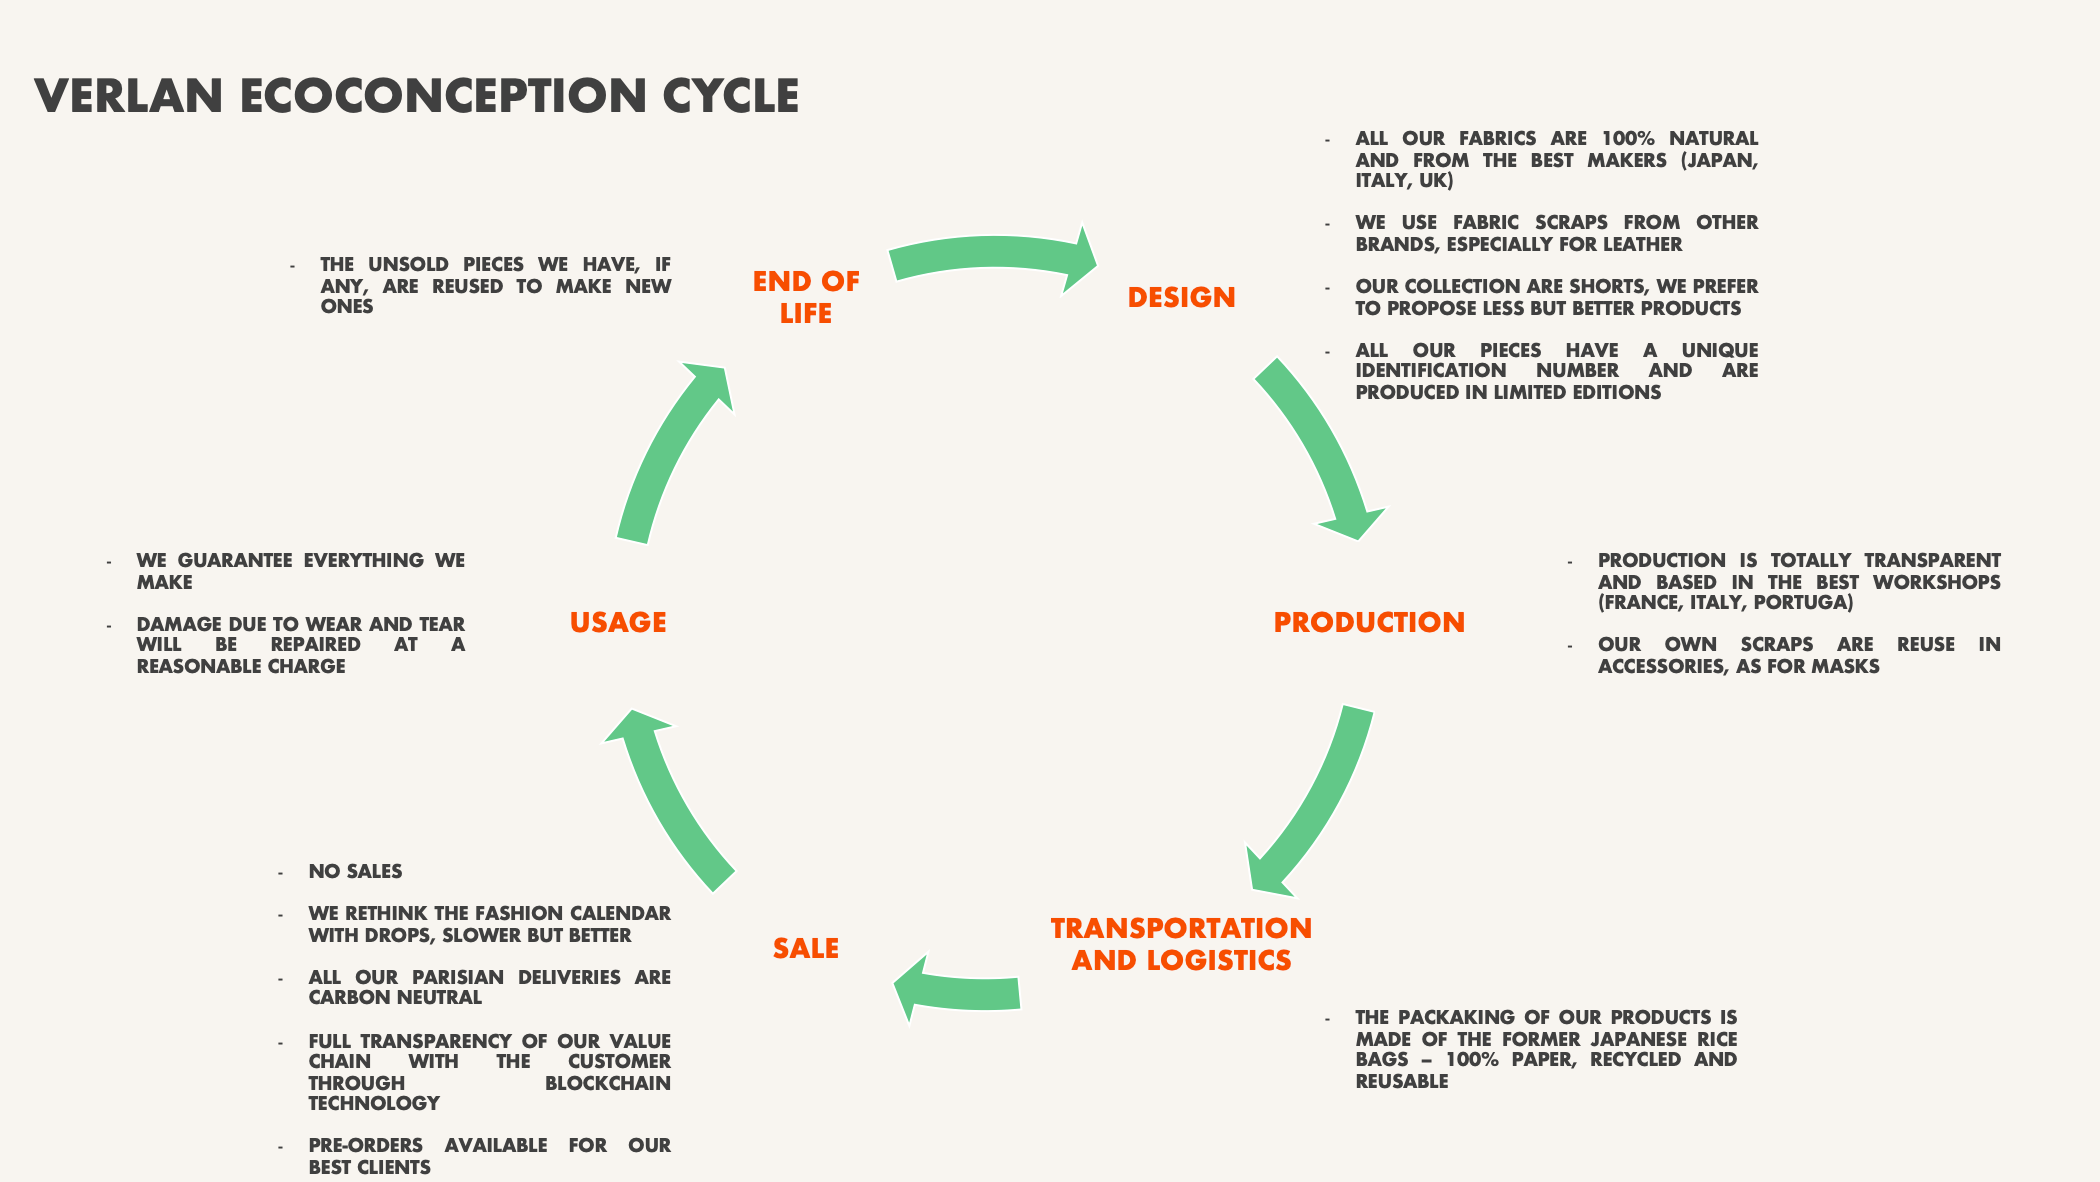 Eco conception cycle verlan